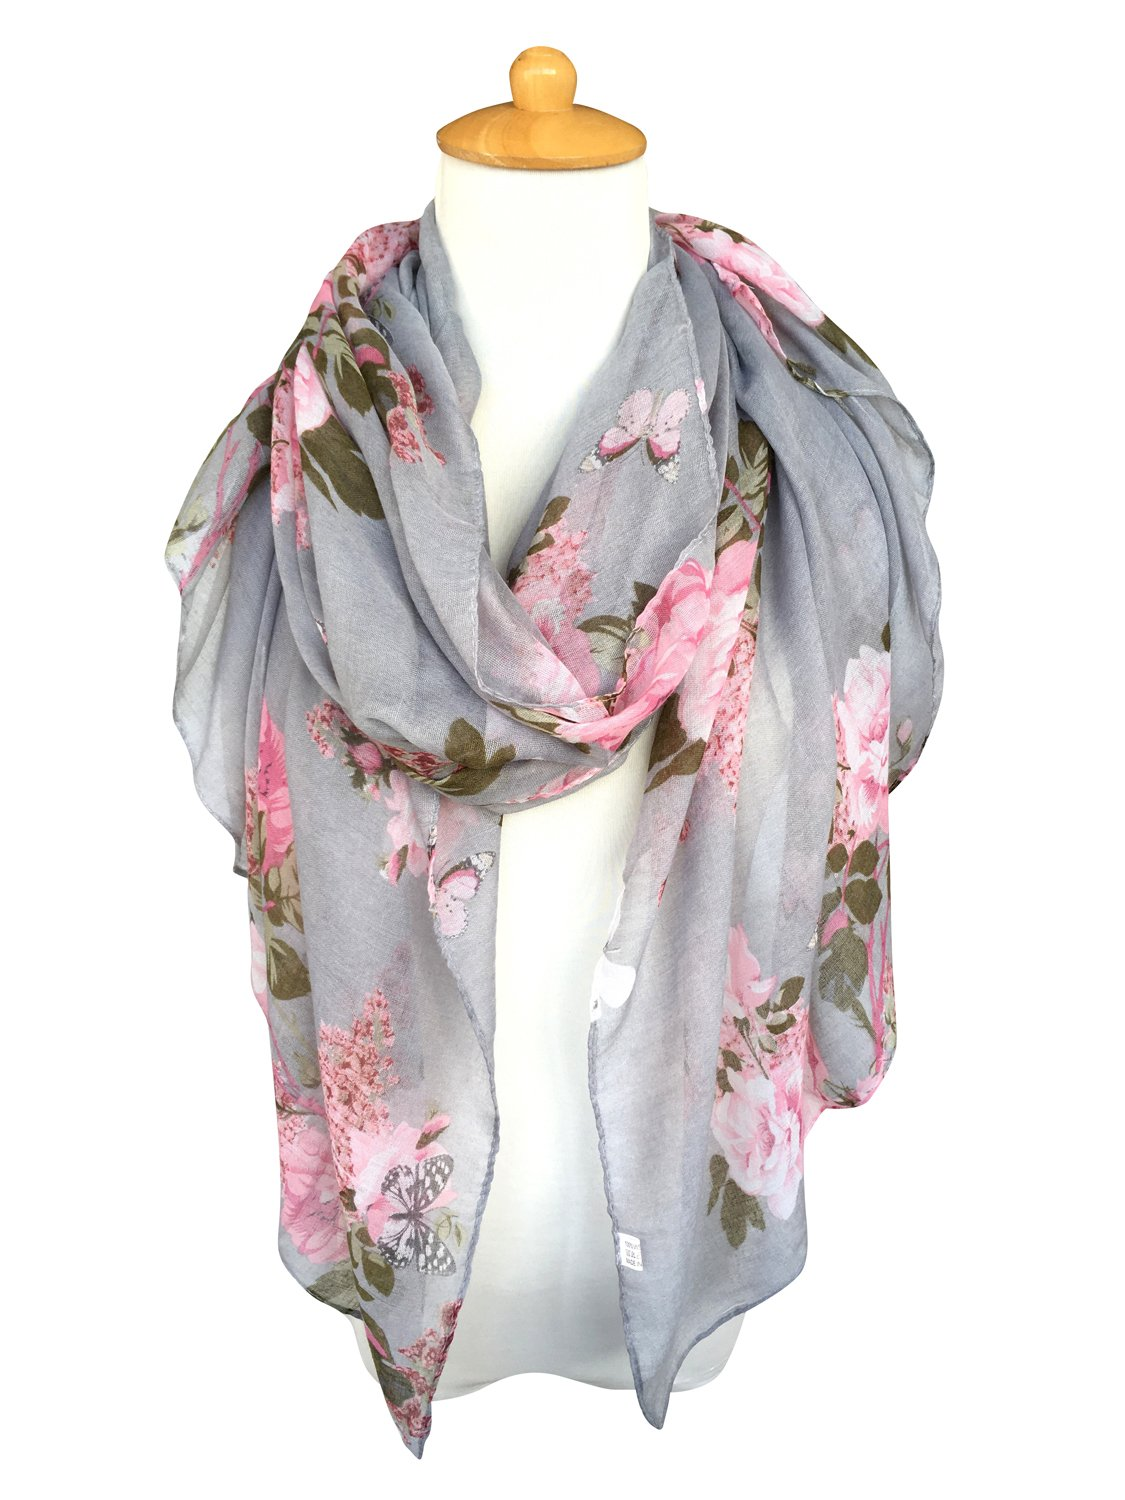 GERINLY Lightweight Shawl Scarf: Peony Print Beach Wrap For Hawaiian Vacation (Grey) by GERINLY (Image #2)